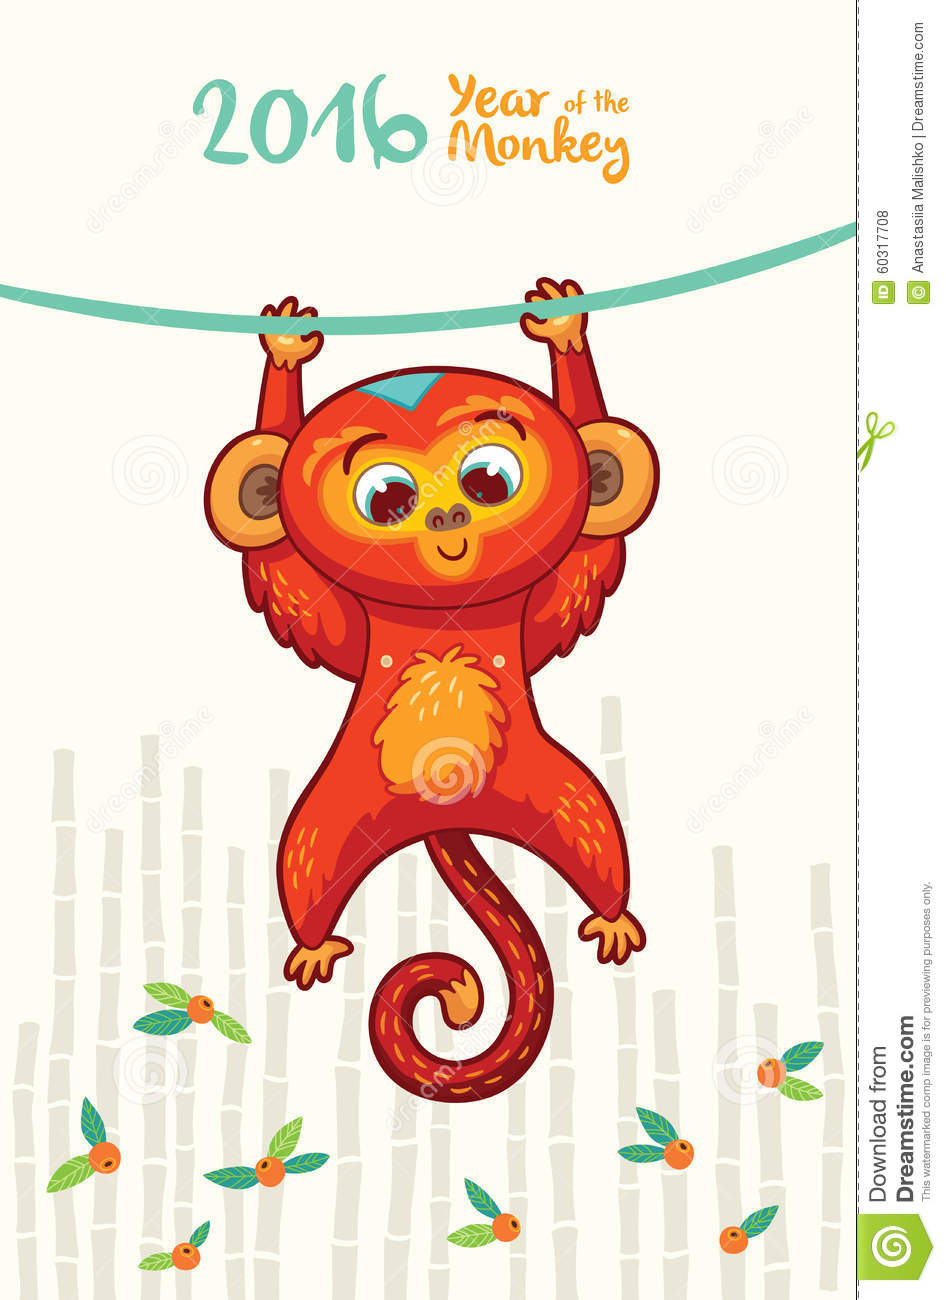 New Year Card With Red Monkey For Year 2016 Stock Vector - Image ...